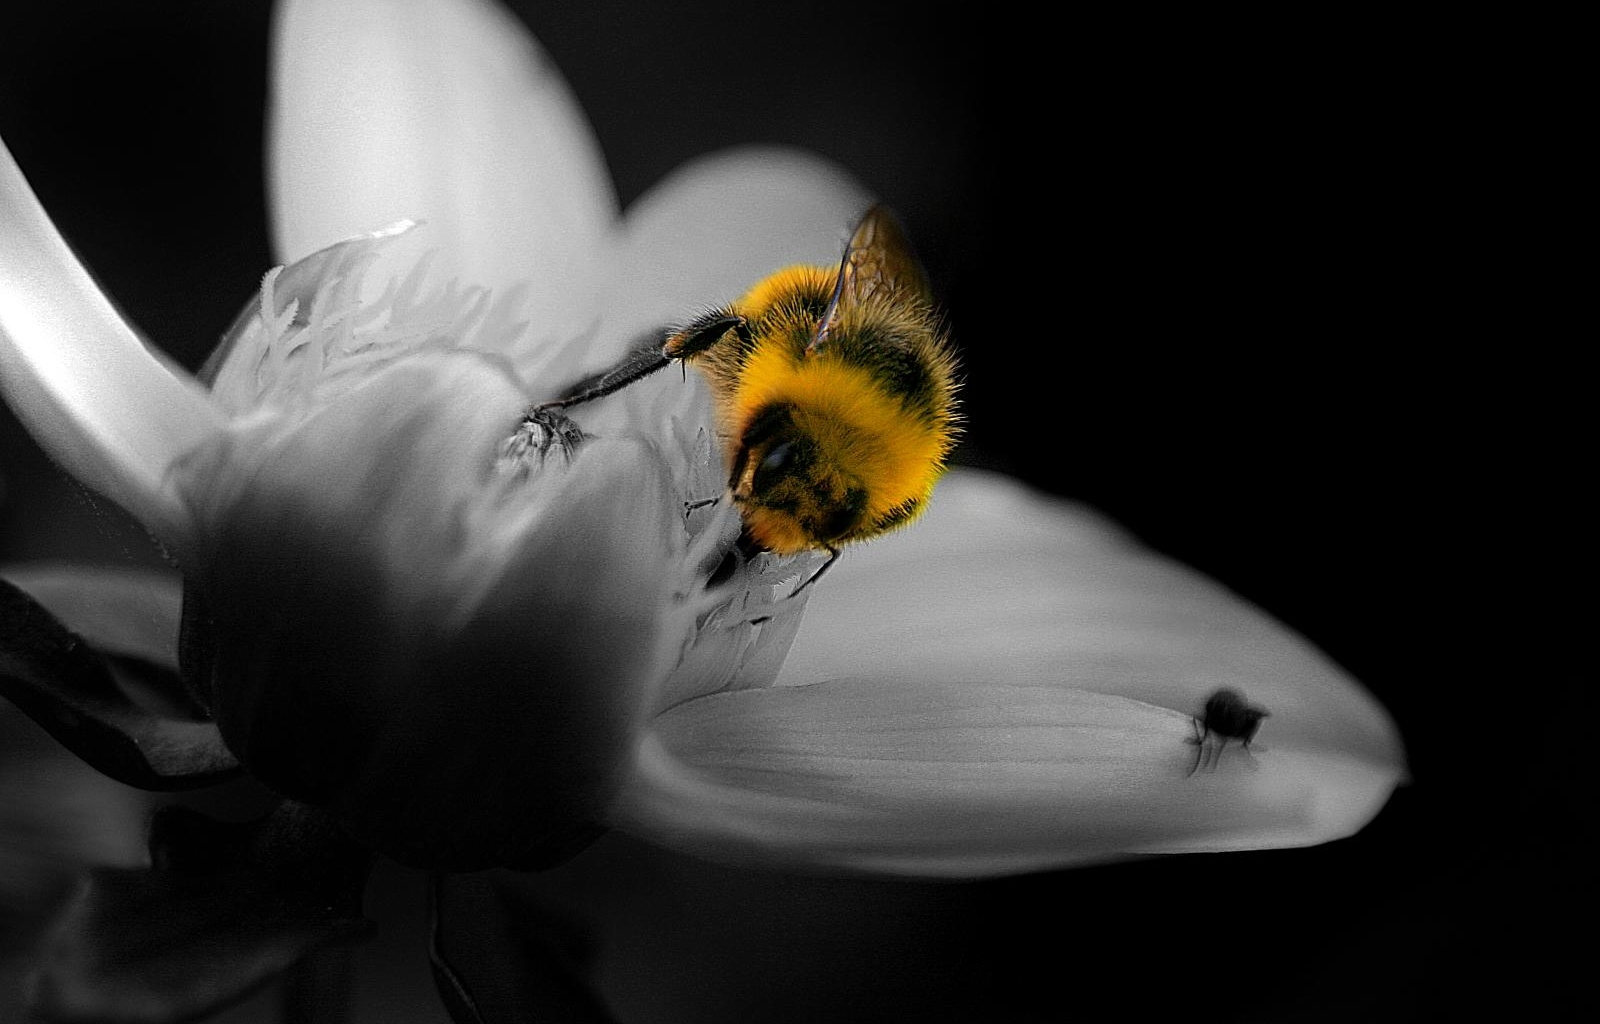 5636 Screensavers and Wallpapers Bees for phone. Download Flowers, Insects, Bees pictures for free